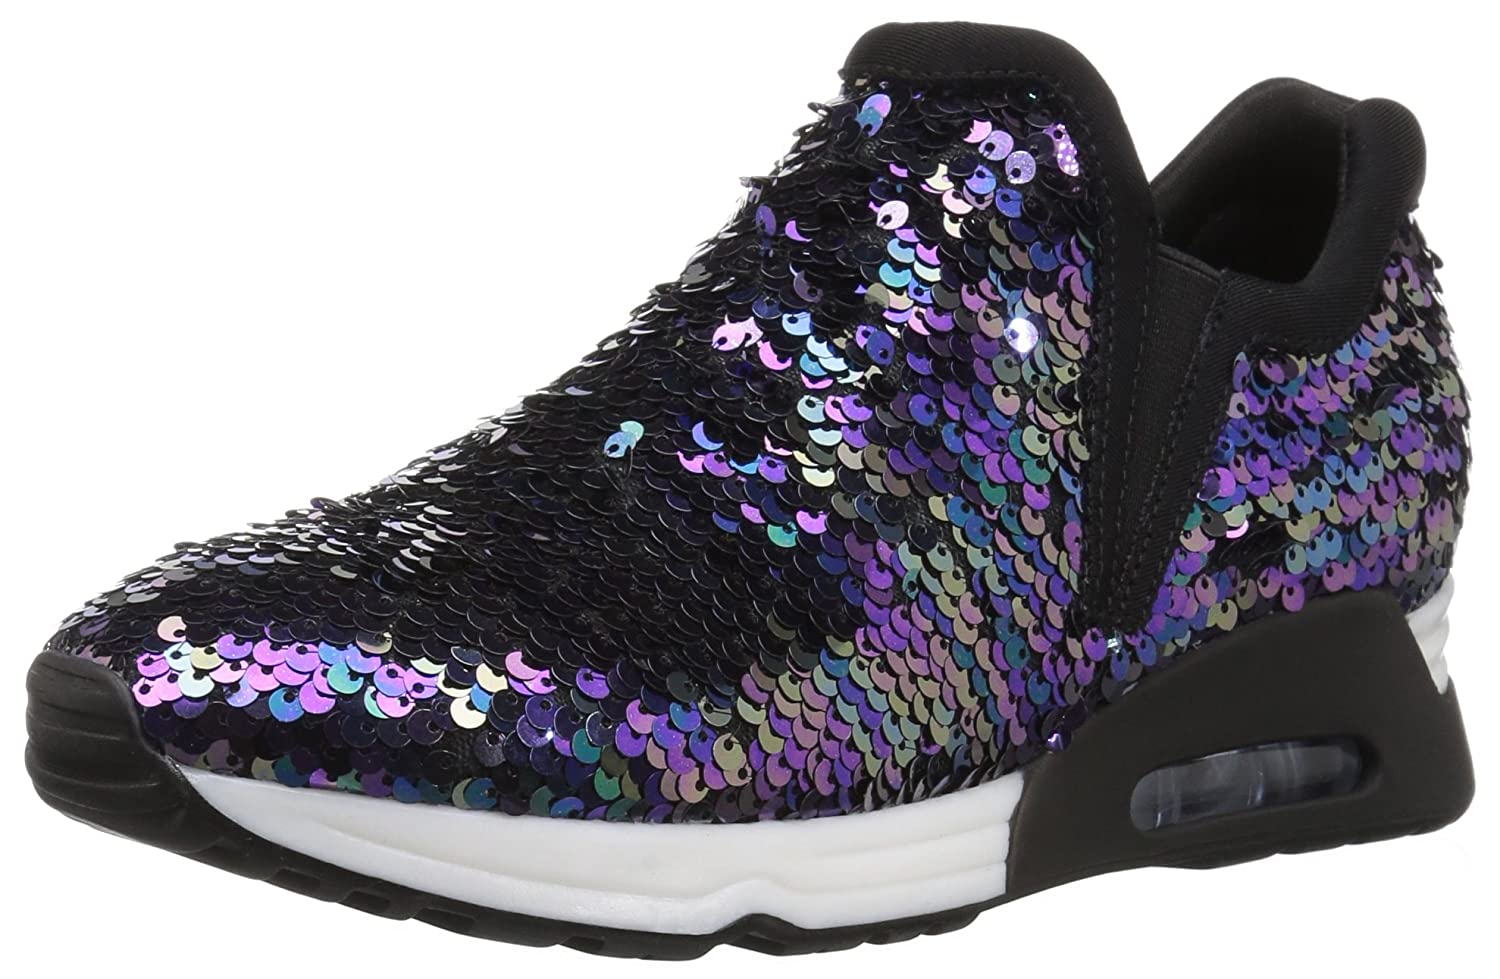 The Fix Women's Luca Slip-on Sequin Jogger Sneaker B076RC41ZS 7.5 B(M) US|Black/Multi Sequin